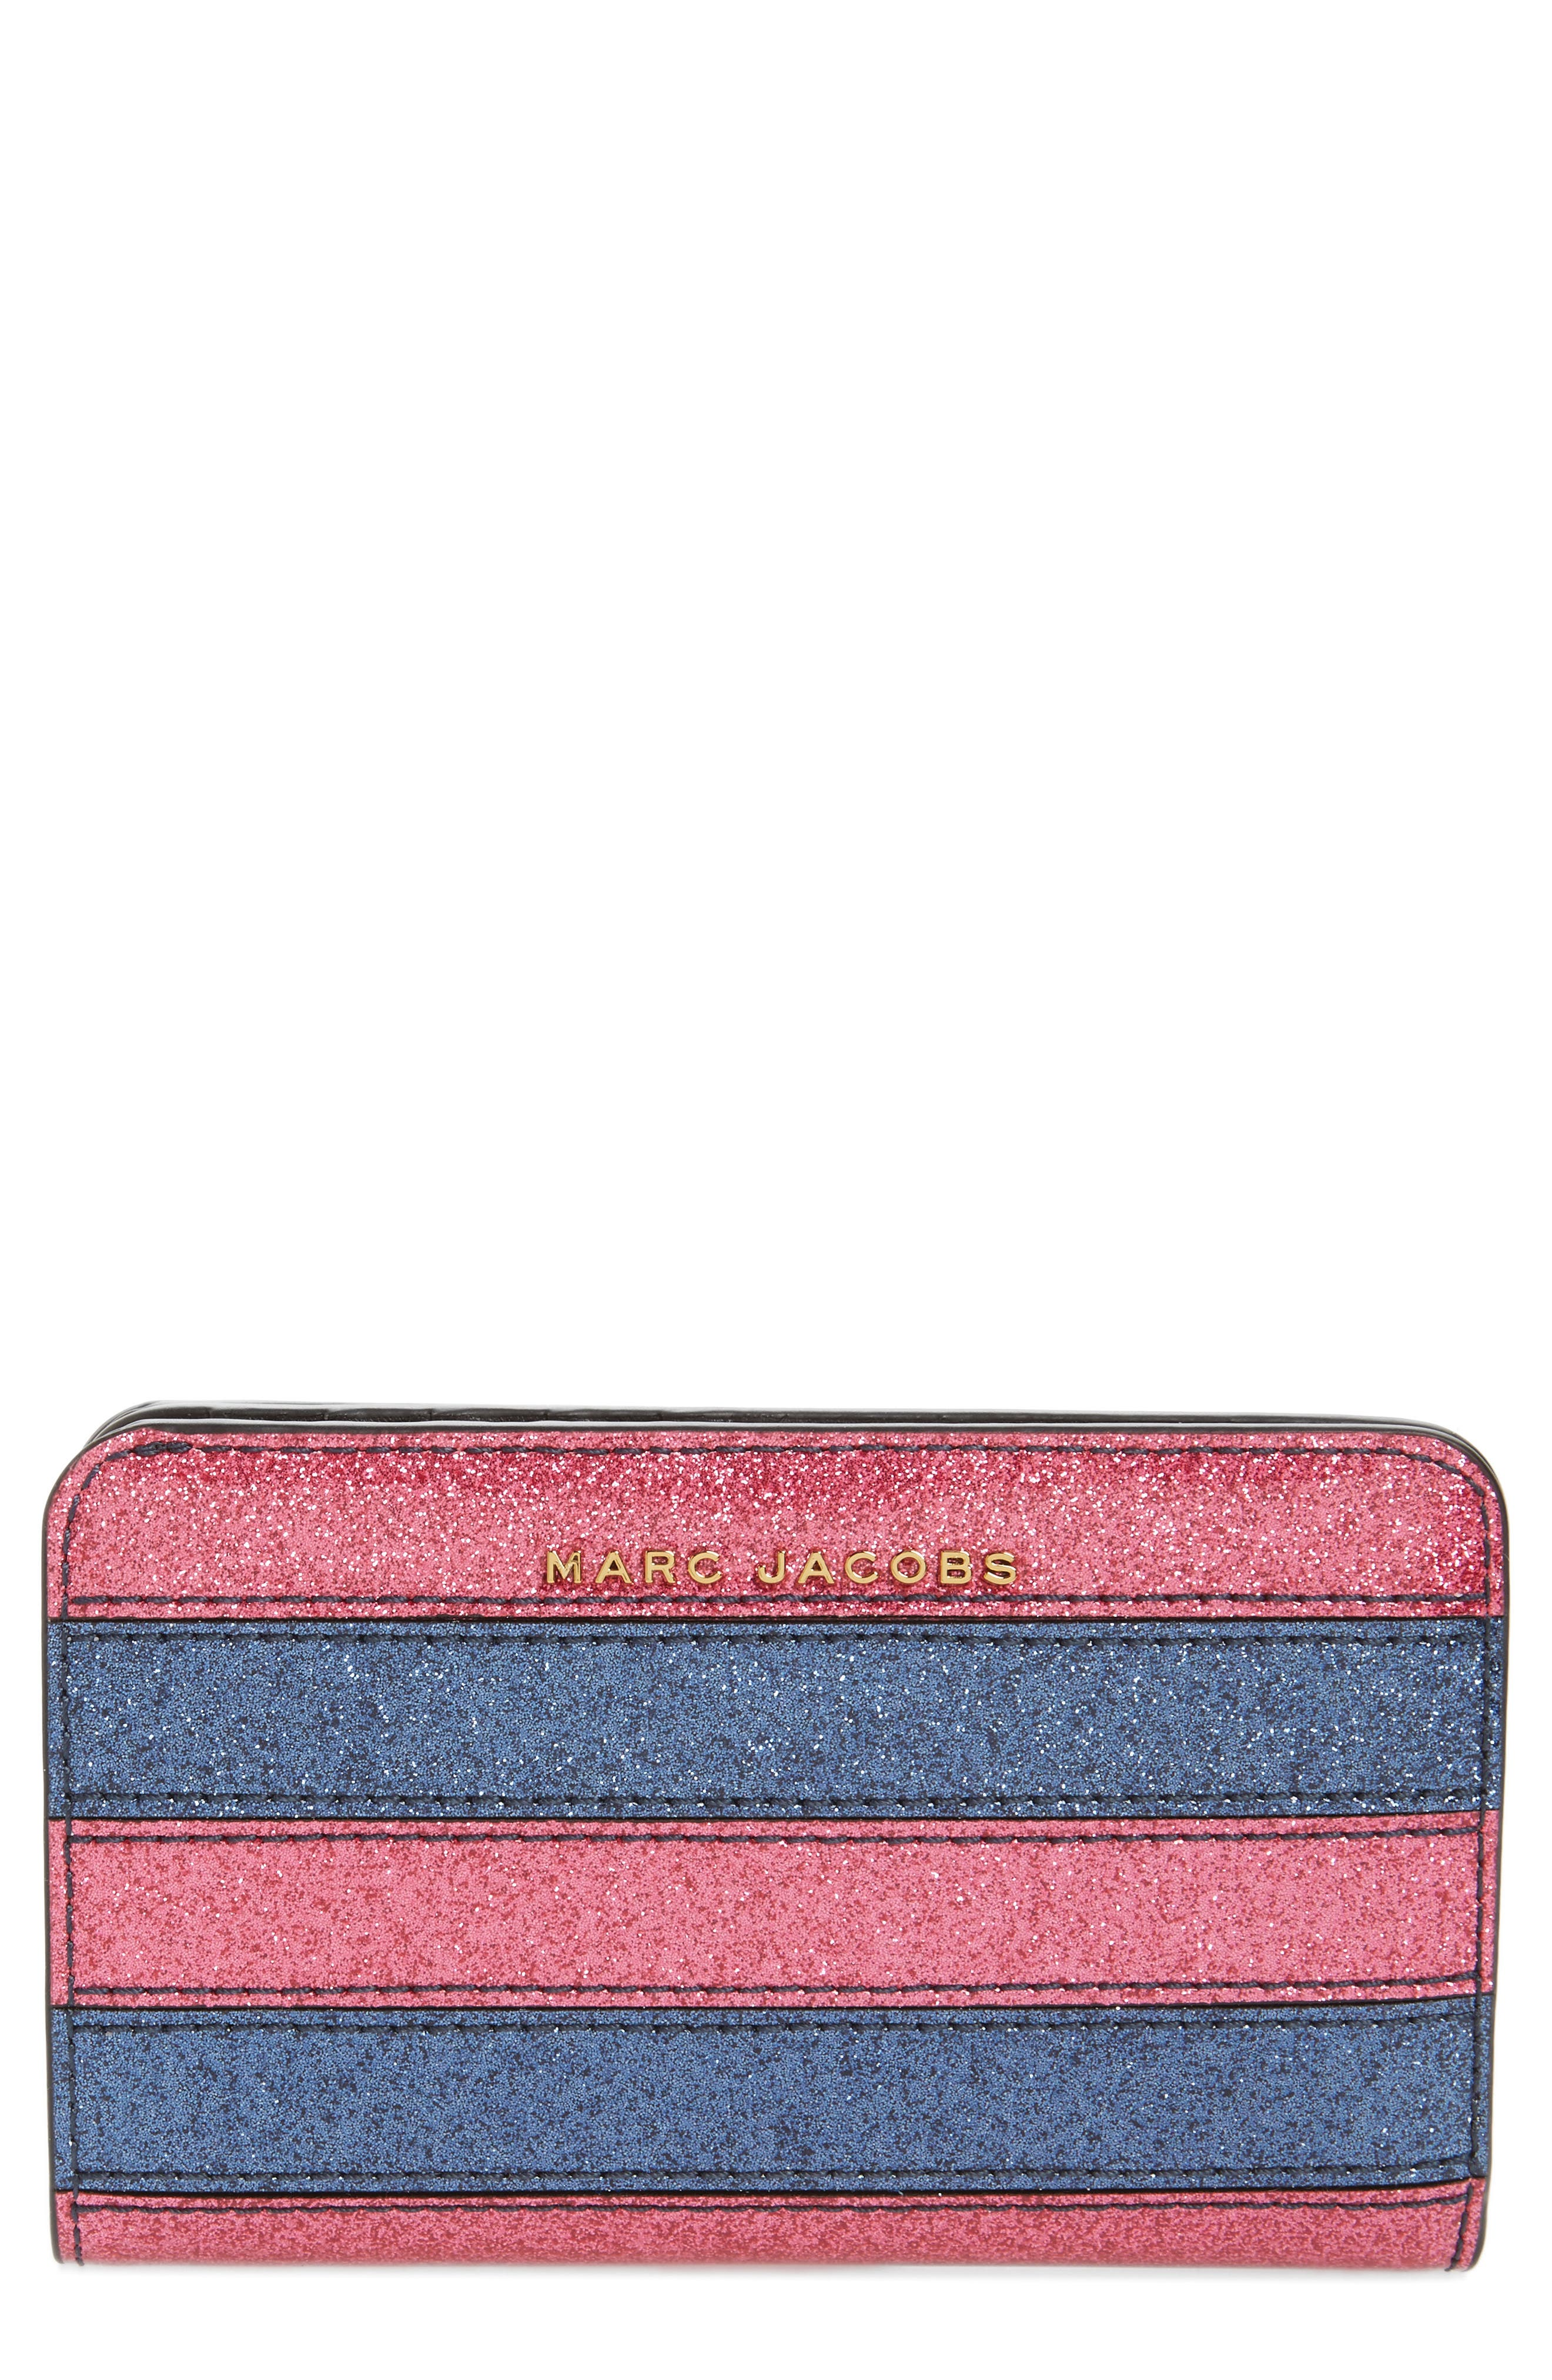 MARC JACOBS Glitter Stripe Compact Leather Wallet